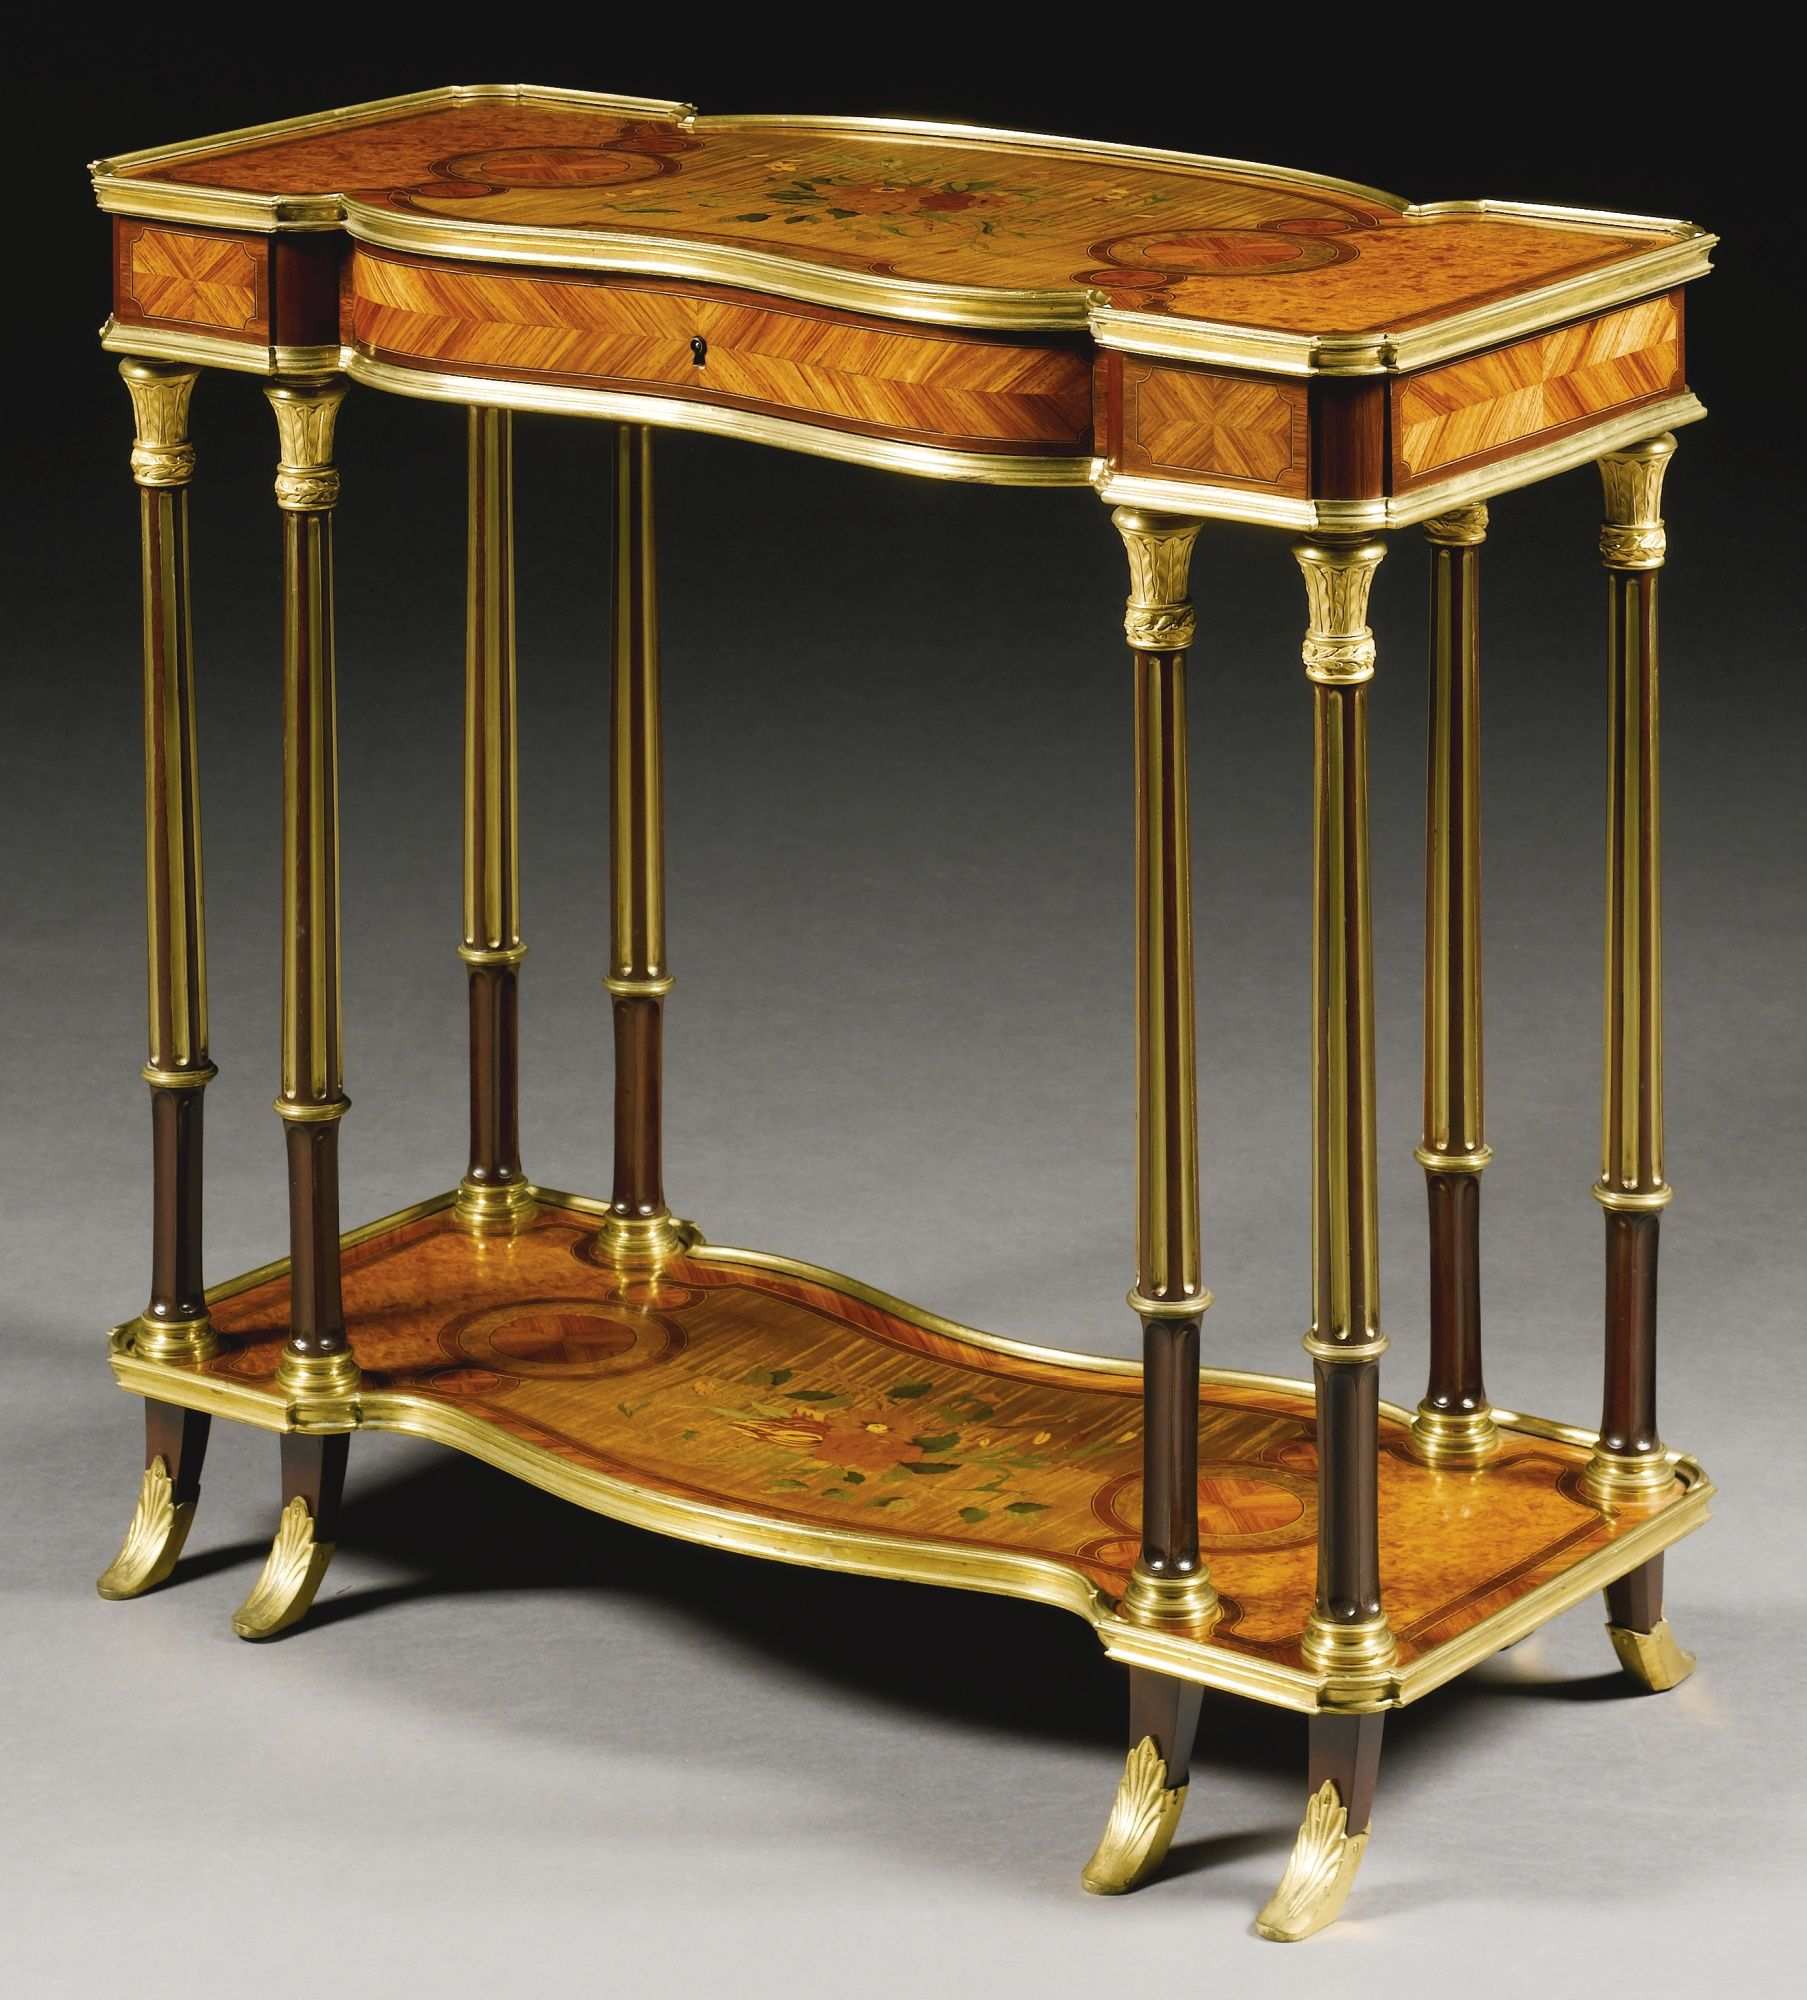 a louis xvi style gilt bronze mounted kingwood burrwood sycomore and stained m bel. Black Bedroom Furniture Sets. Home Design Ideas